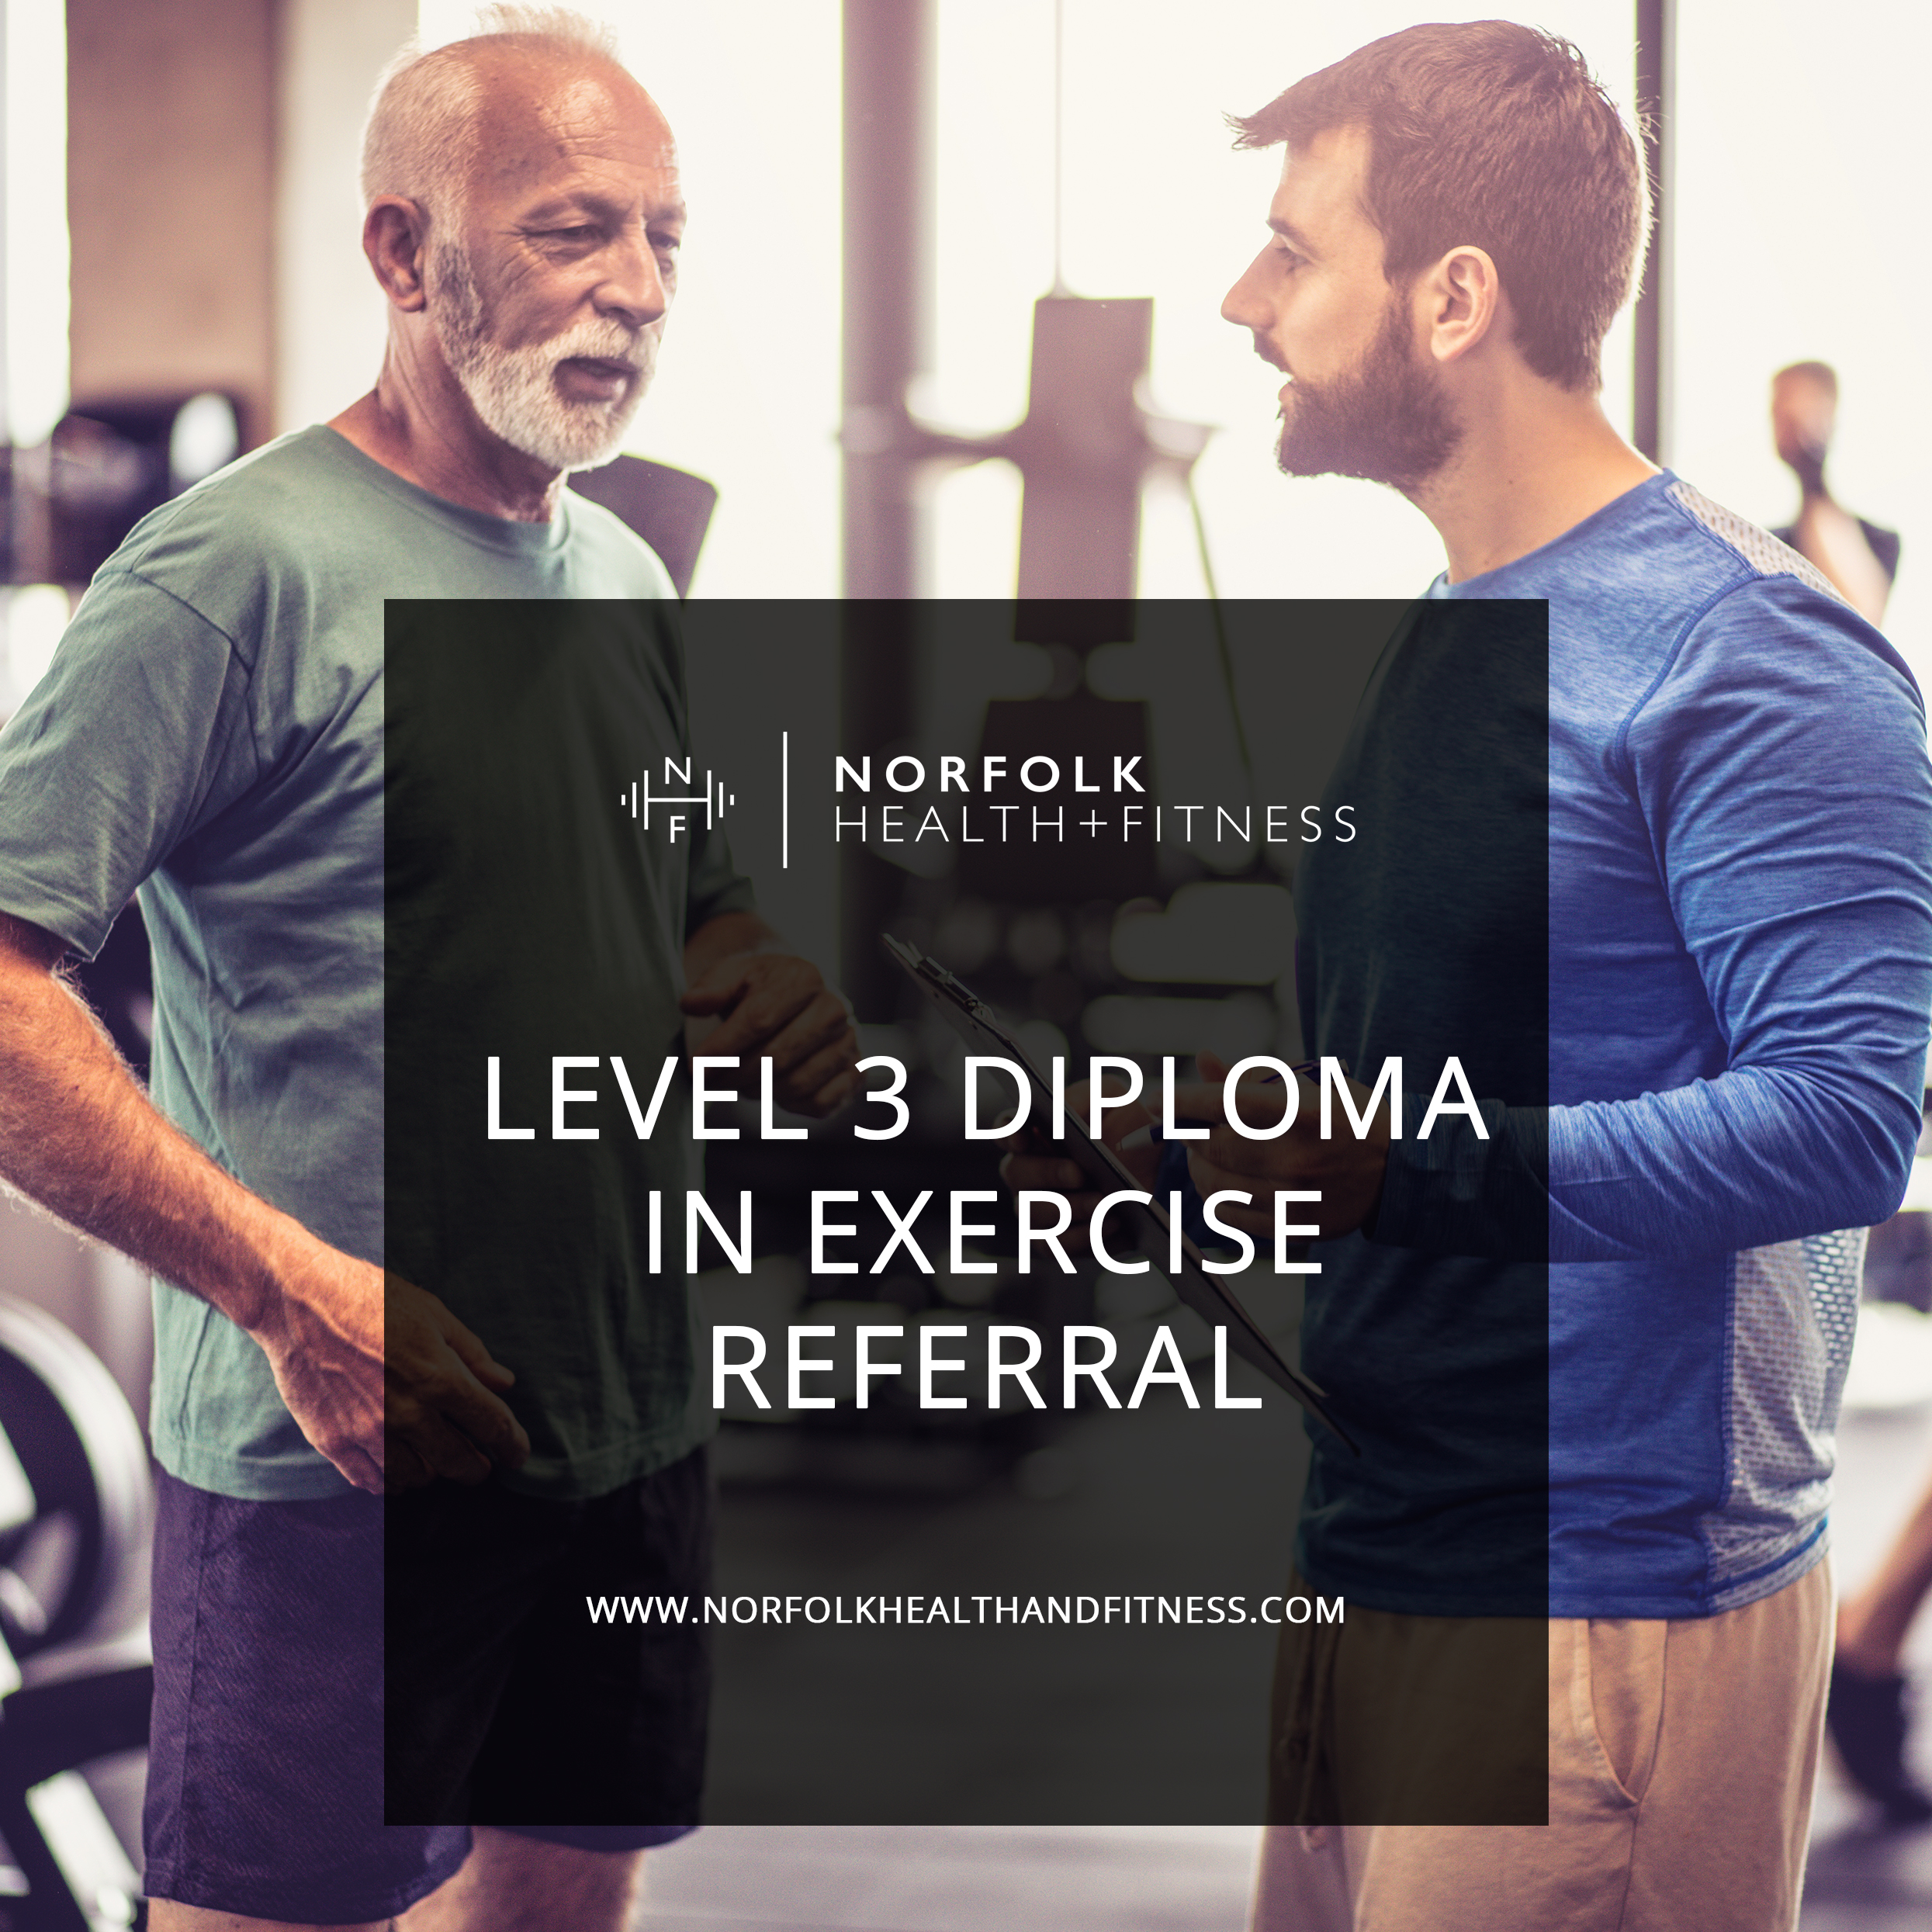 EXERCISE REFERAL;